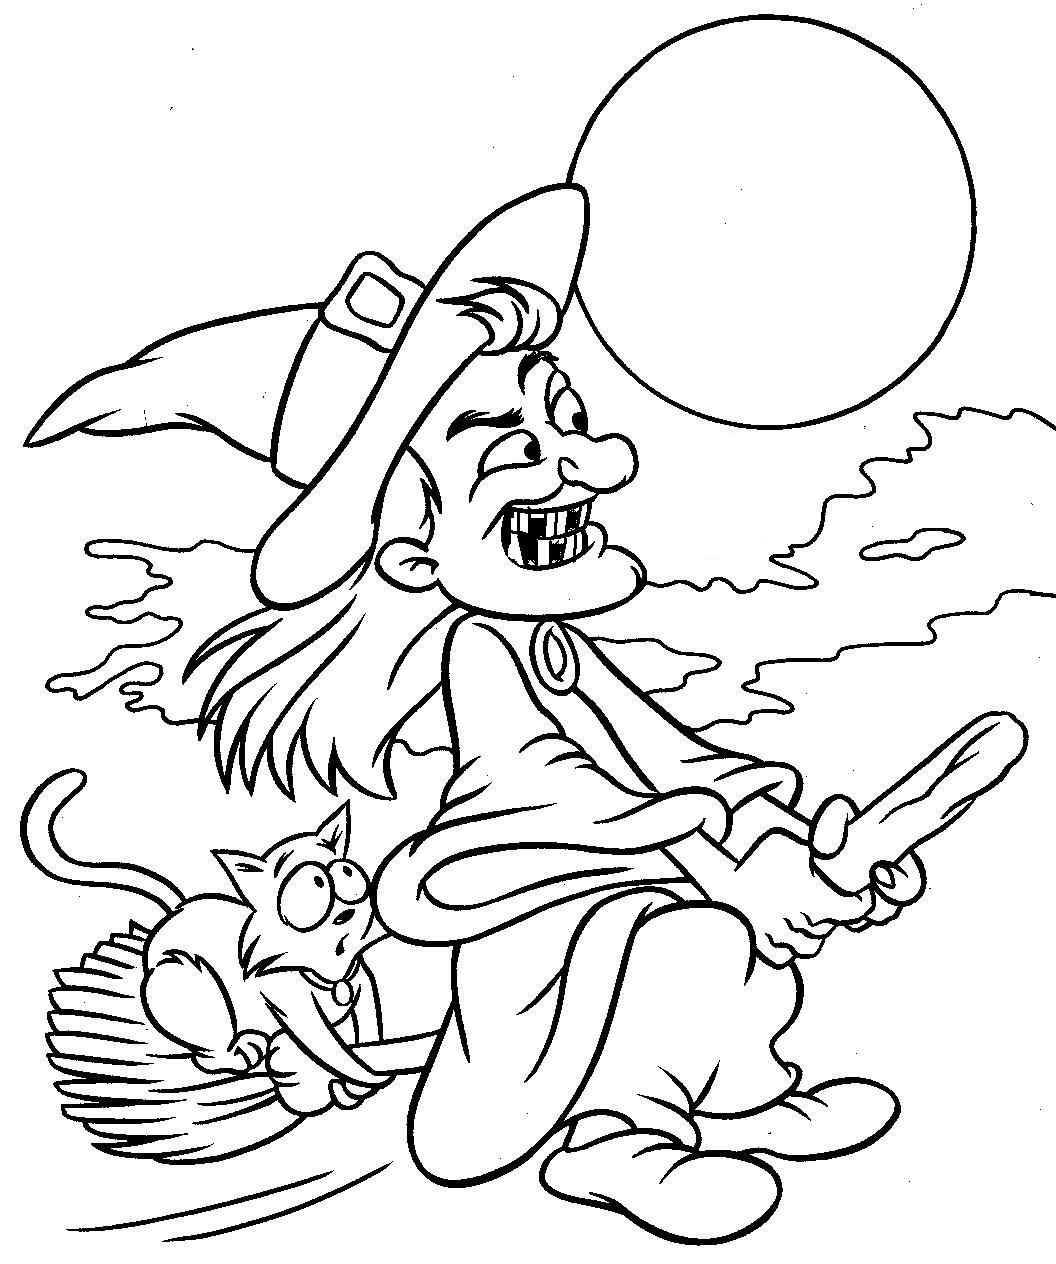 halween coloring pages - photo#45